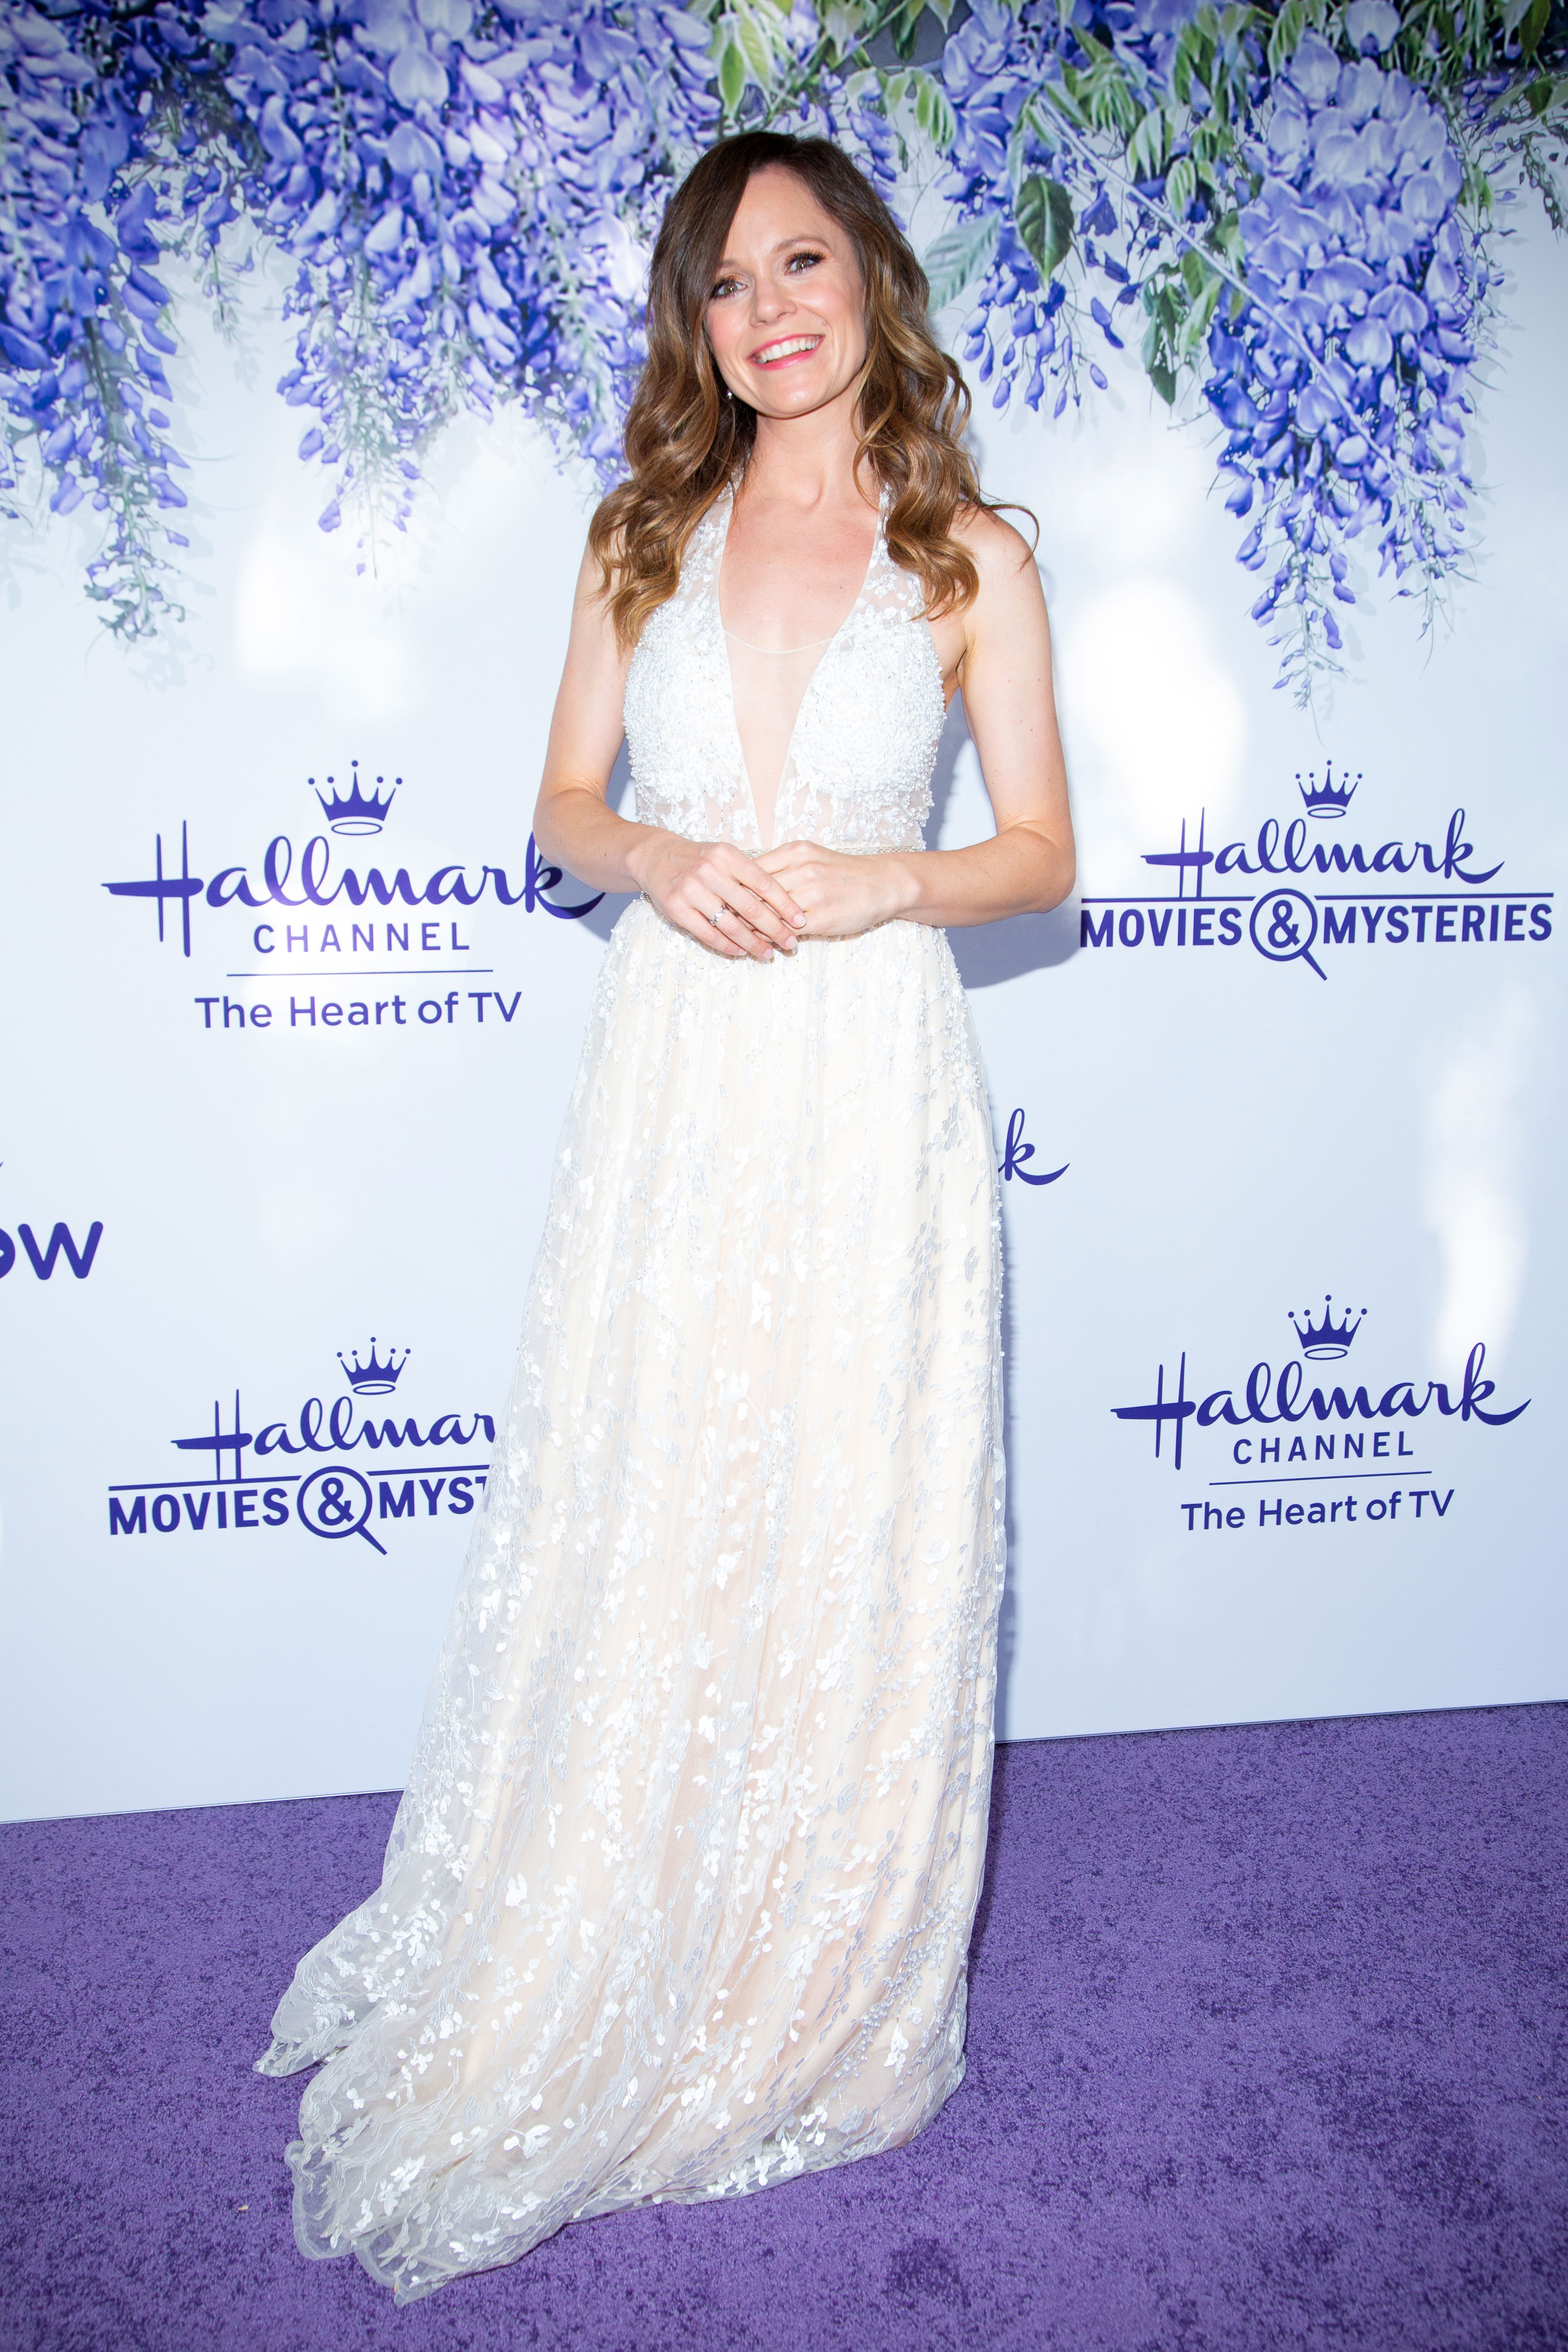 Rachel Boston Hallmark Announces June Weddings Lineup THE LAST BRIDESMAID - Rachel Boston 's Becca is always a bridesmaid, so she's shocked to meet two men at her cousin's wedding – the videographer (played by Paul Campbell ) and the best man! (June 22, 9 p.m. ET)